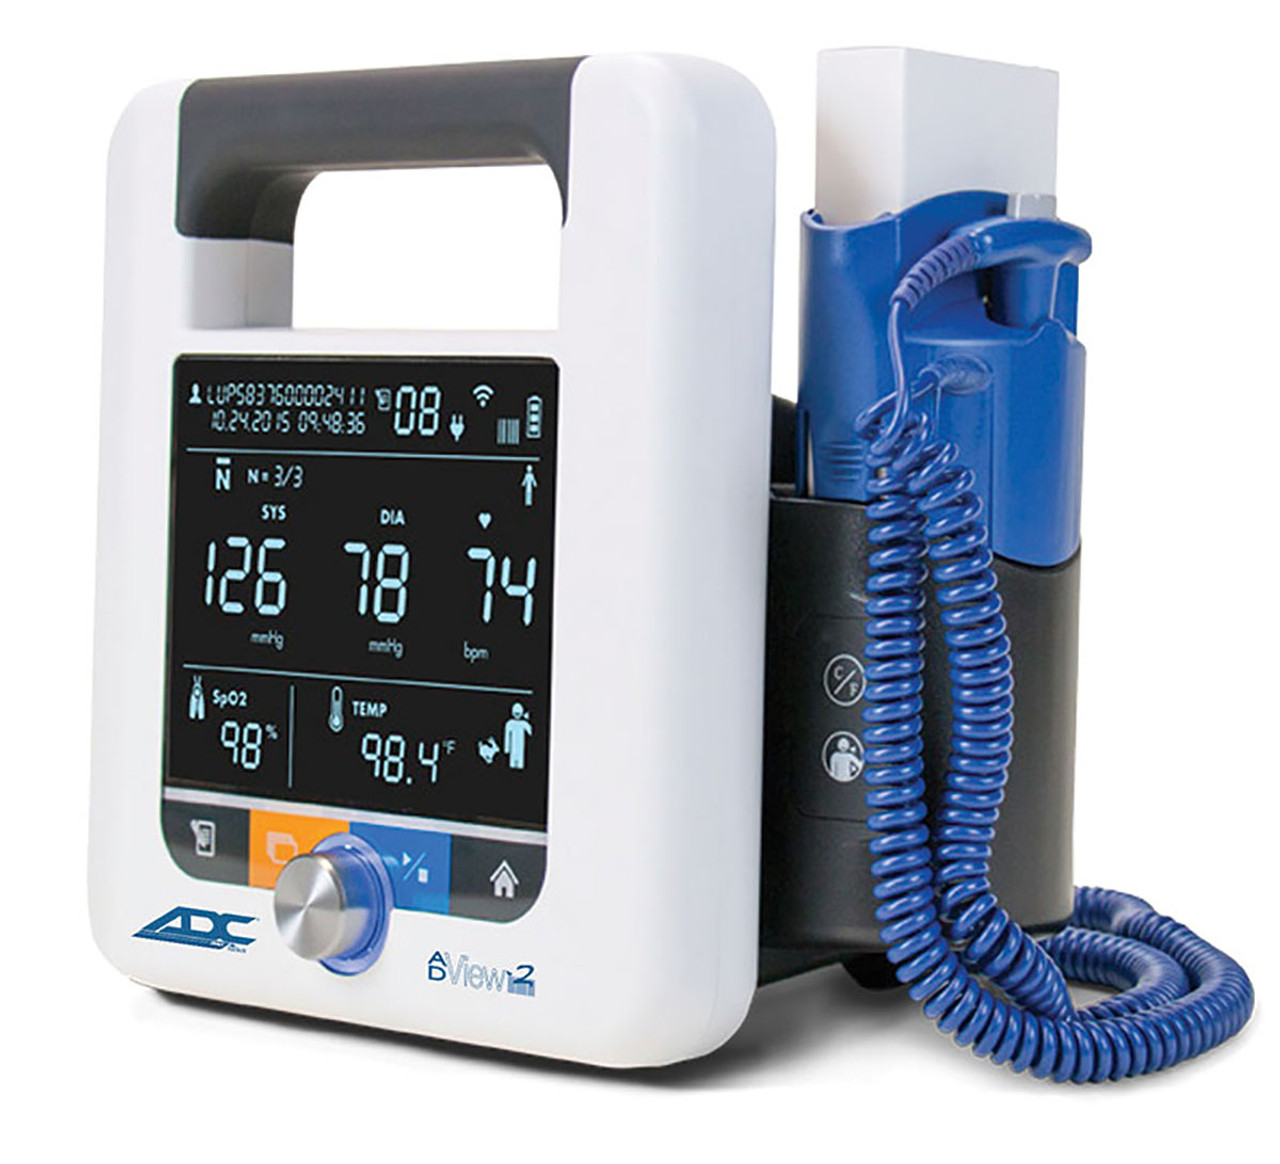 ADC AdView 2 Diagnostic Station, w/ Blood Pressure and Temperature Modules